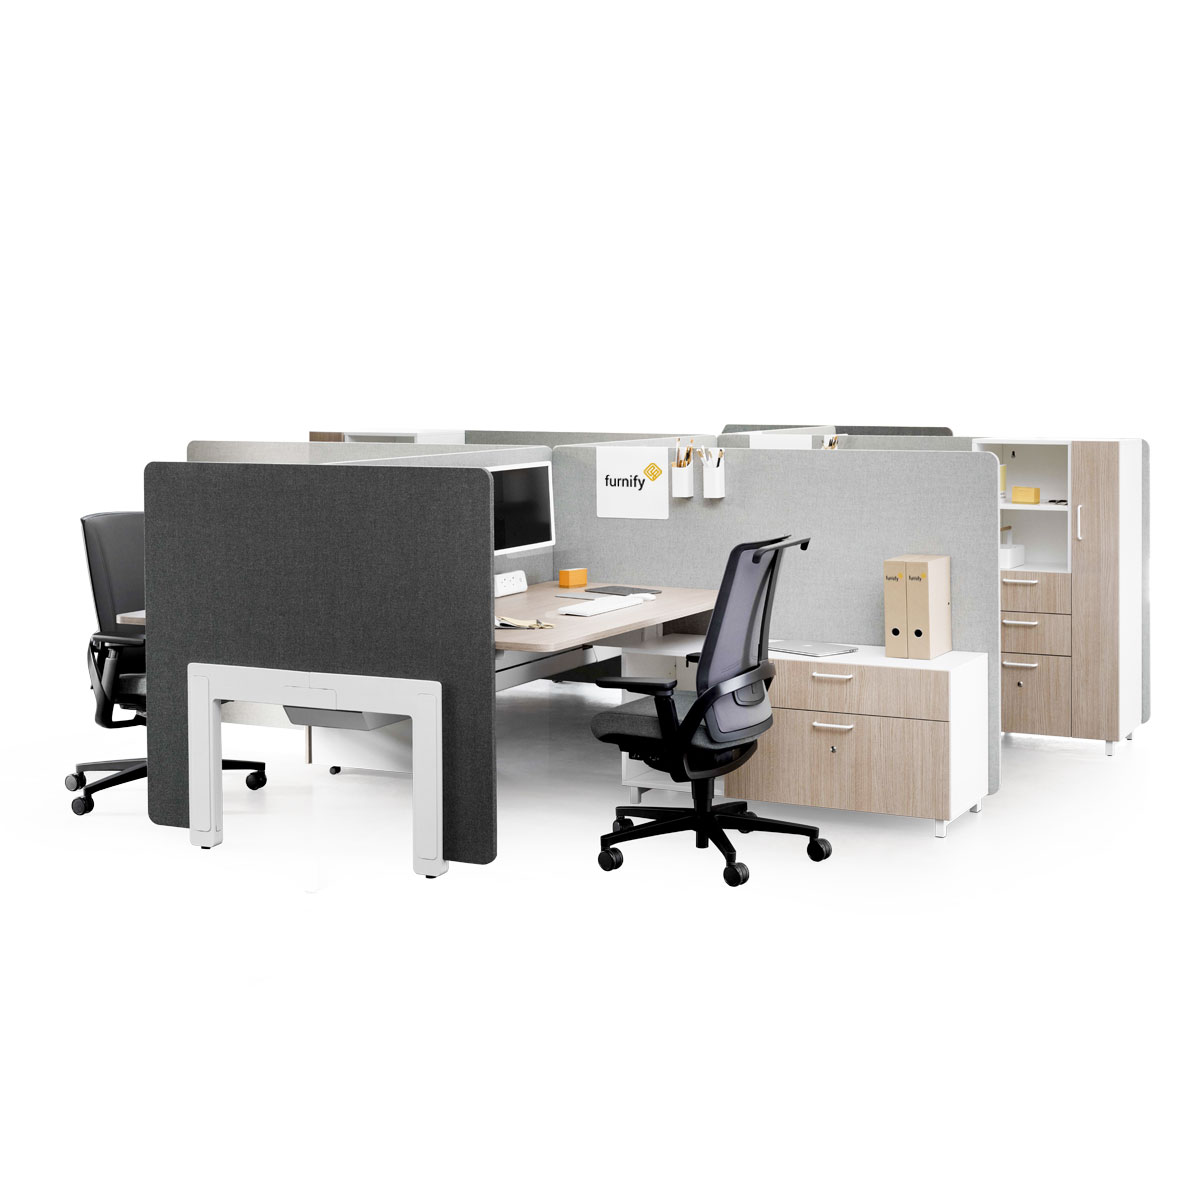 SetMe Bench Desk with Screens